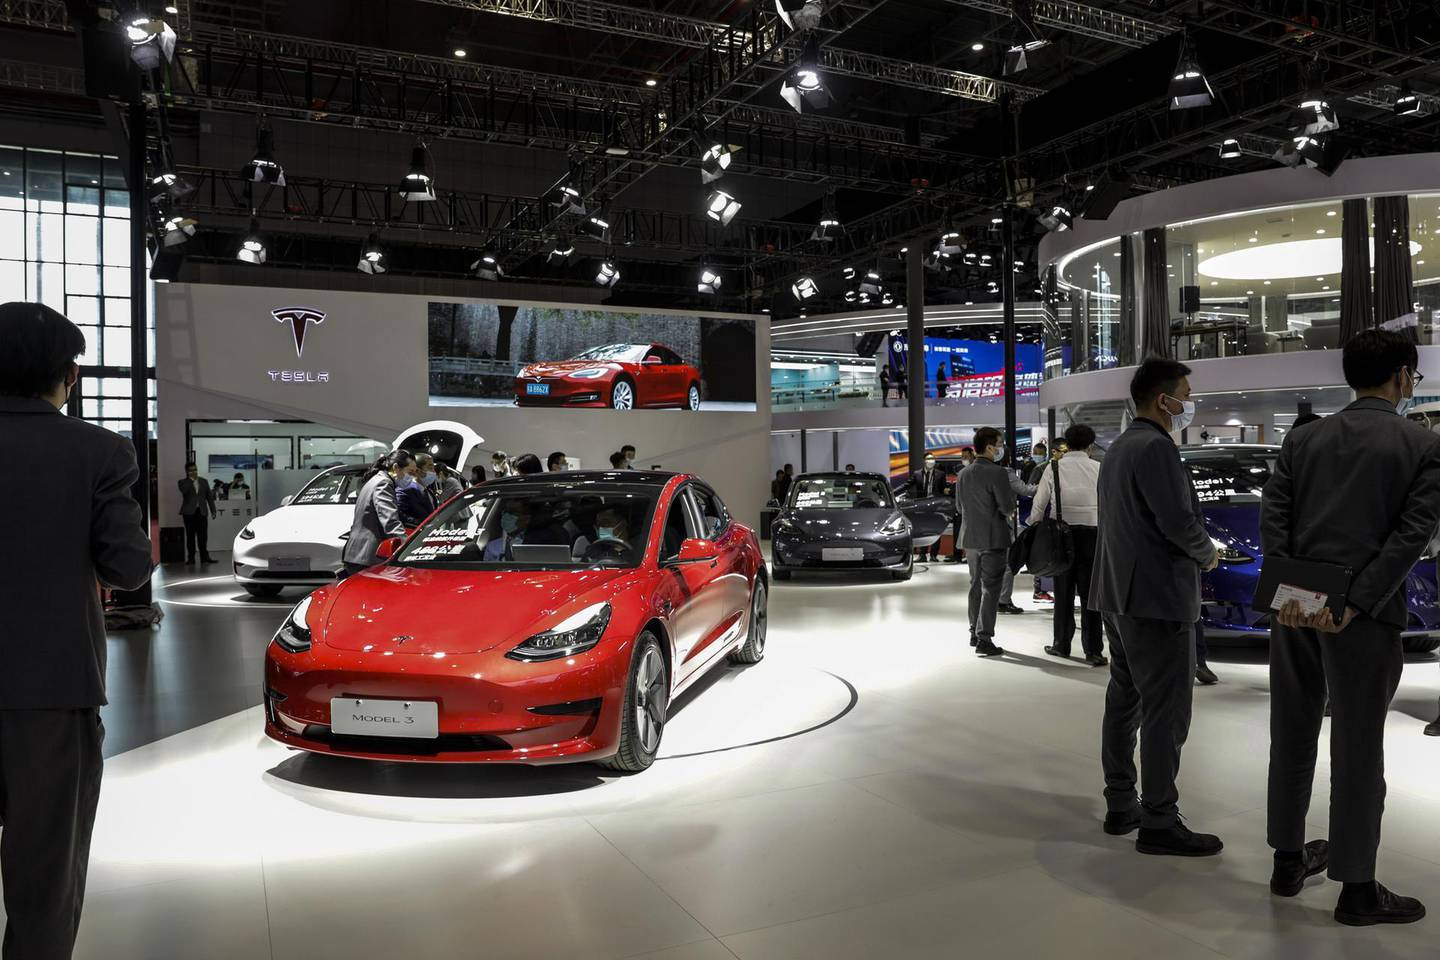 Visitors walk past Chinese-made Tesla Inc. electric vehicles at the company's booth at the Auto Shanghai 2021 show in Shanghai, China, on Monday, April 19, 2021. The Shanghai International Automobile Industry Exhibition kicked off on Monday in China's financial hub, a multiday event aimed at showcasing the best and brightest car innovations in the world's biggest vehicle market. Photographer: Qilai Shen/Bloomberg